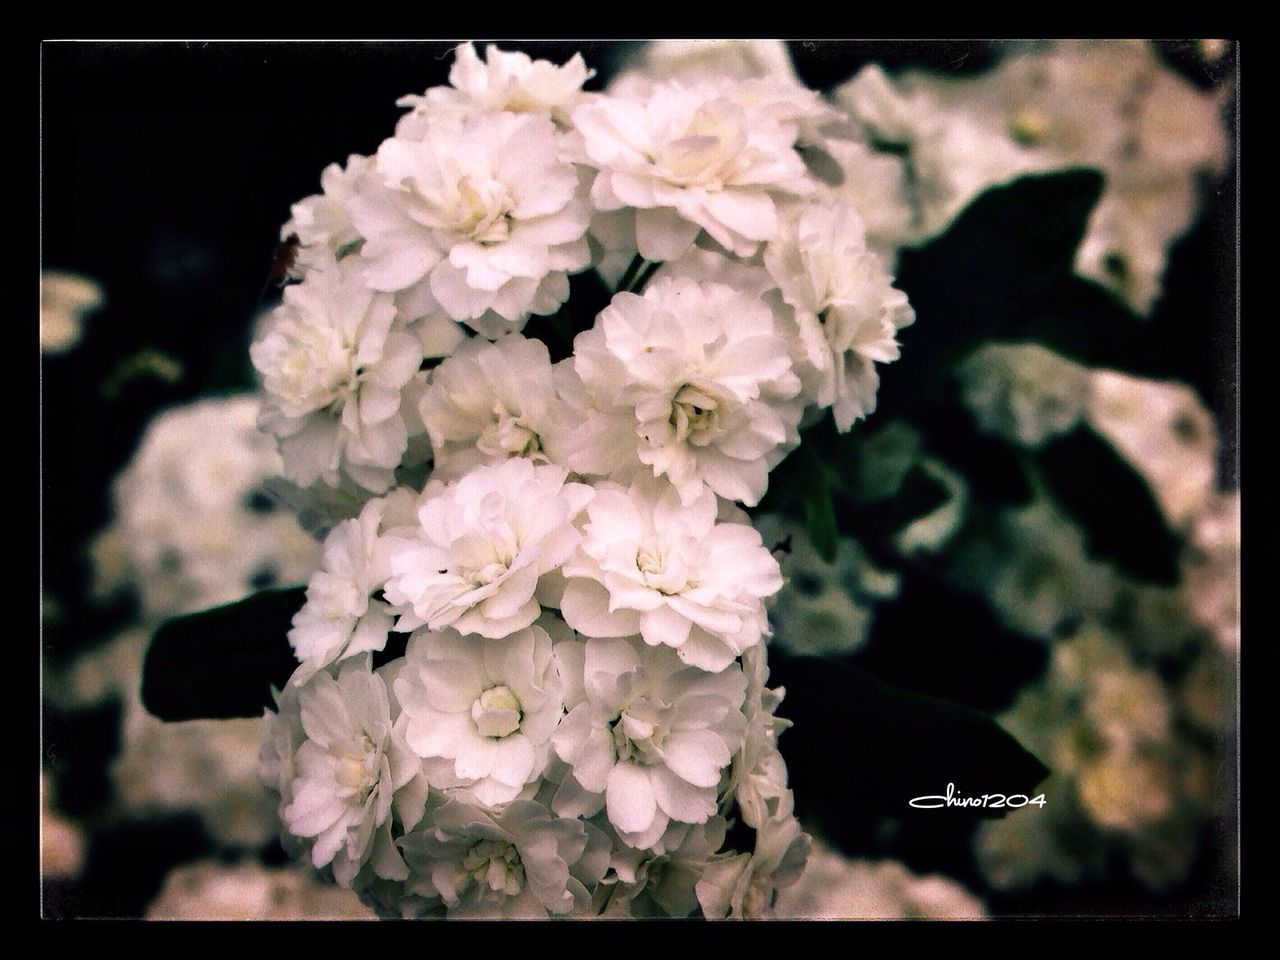 flower, growth, nature, spring, blossom, plant, beauty in nature, petal, summer, blooming, close-up, no people, fragility, freshness, flower head, outdoors, day